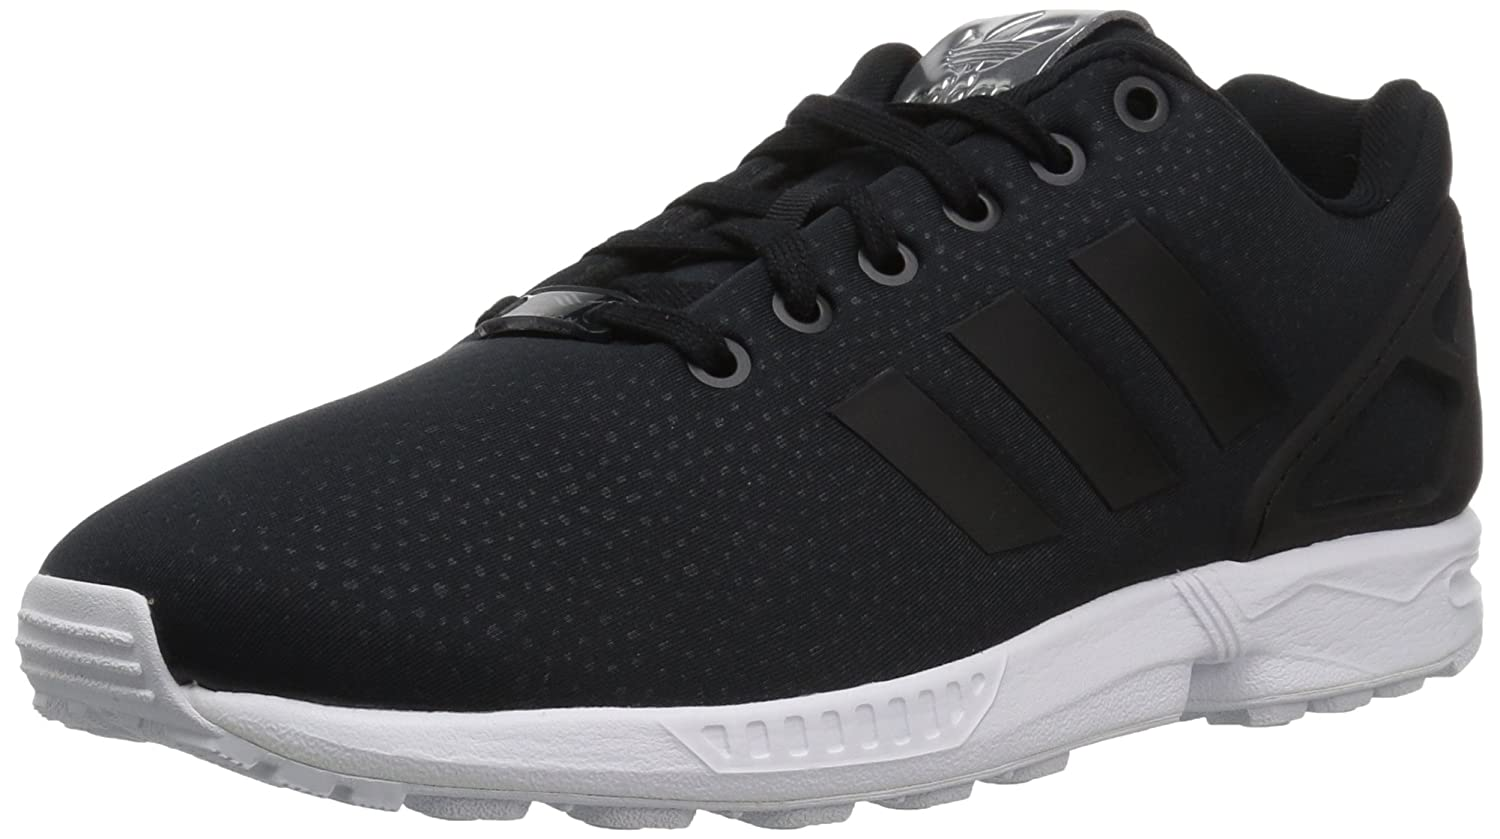 adidas Originals Women's ZX Flux W Running Shoe B01N7KFRHL 11 M US|Black/Black/Metallic Silver